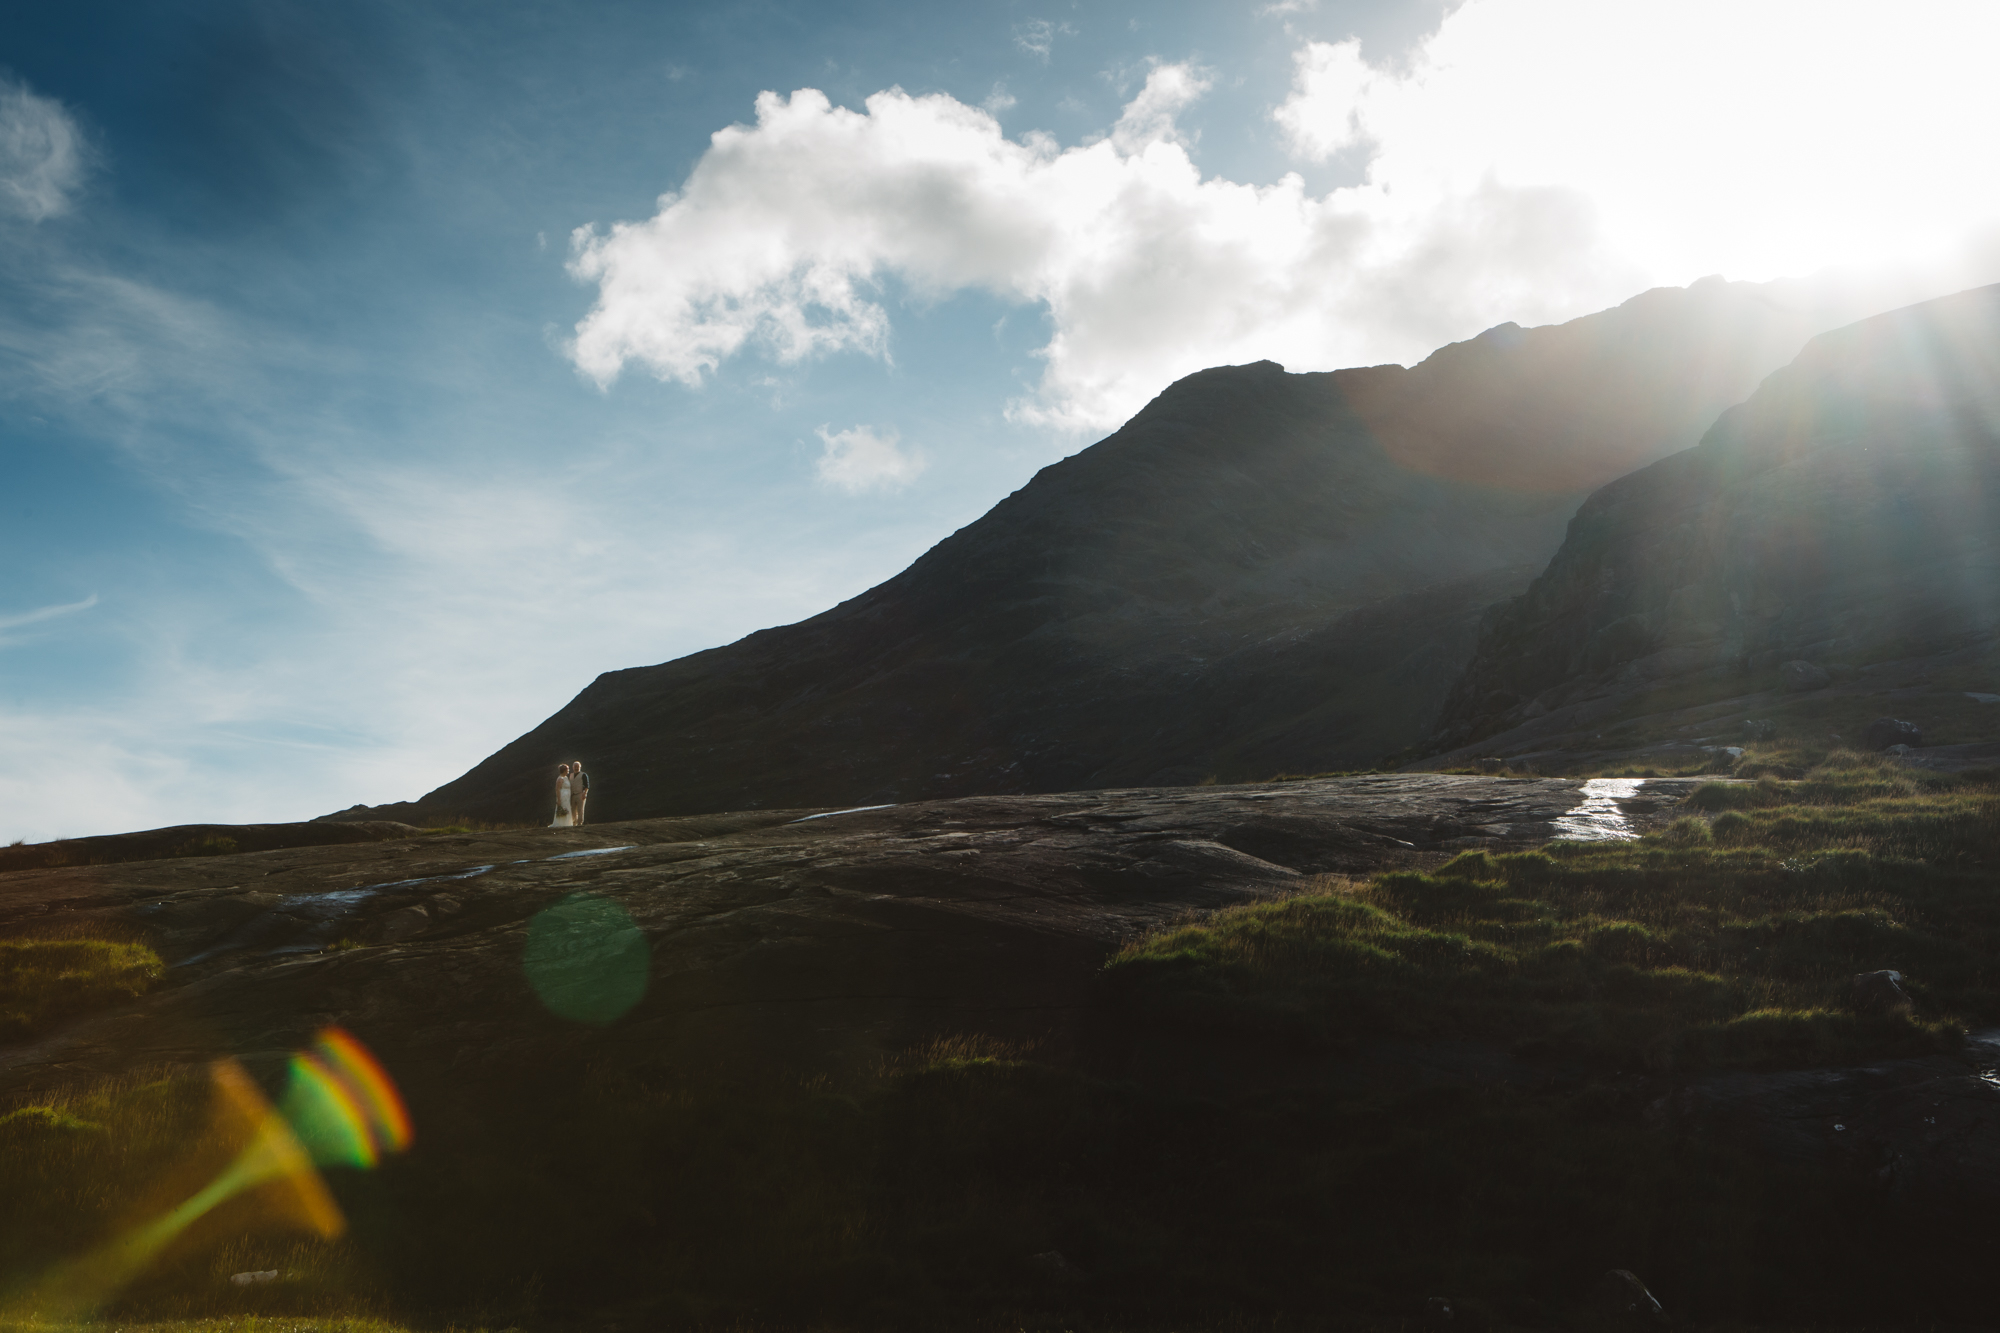 Tiny bride and groom on rock slabs with sun flare at Loch Coruisk